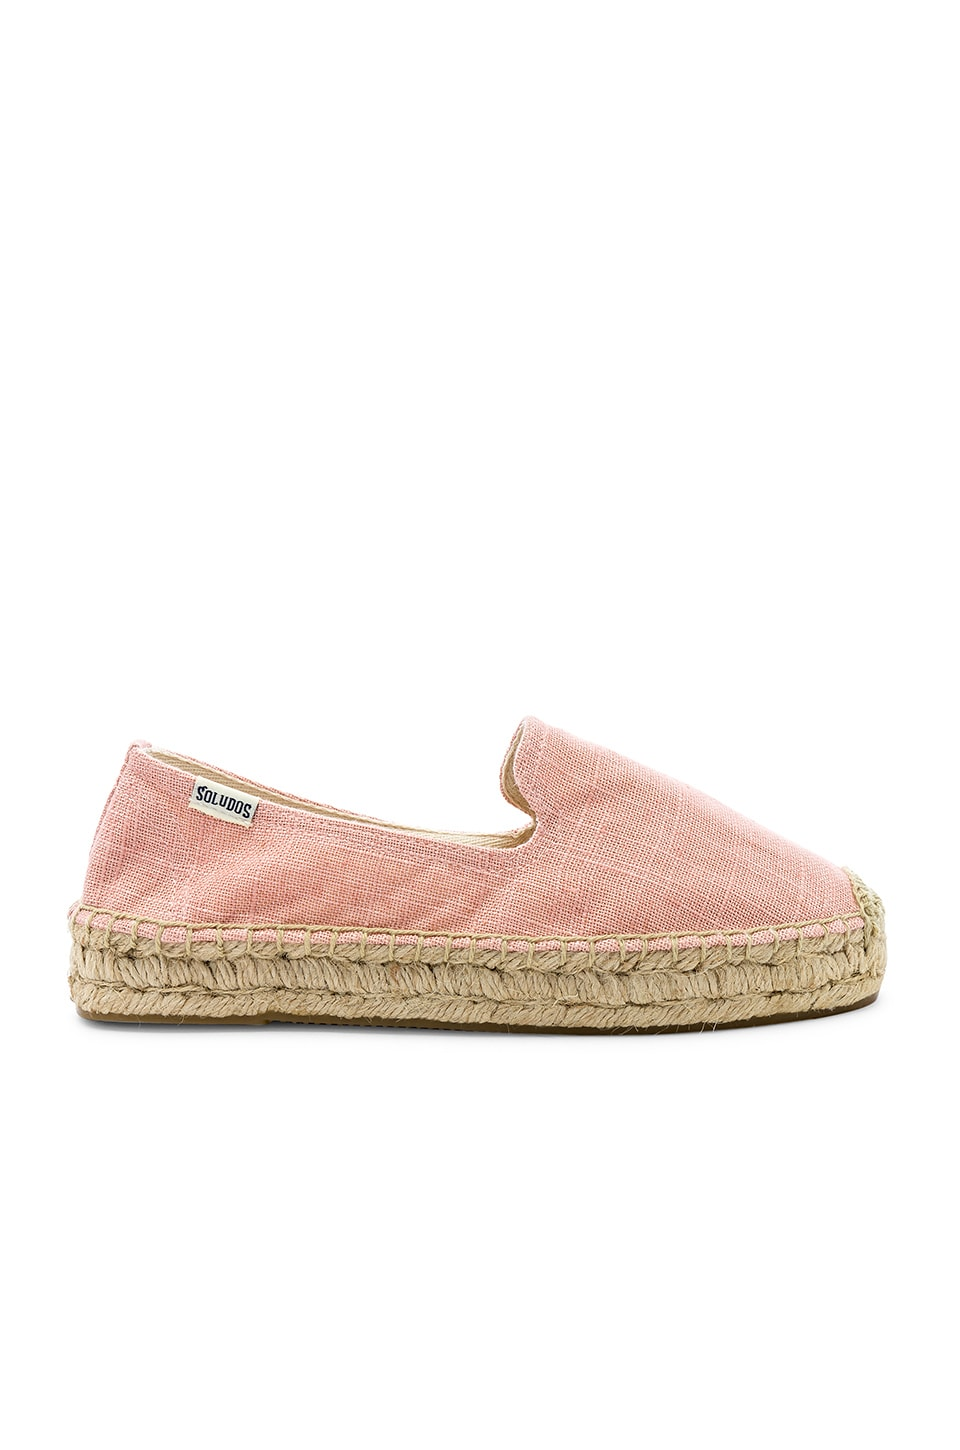 Soludos Platform Smoking Slipper in Dusty Rose